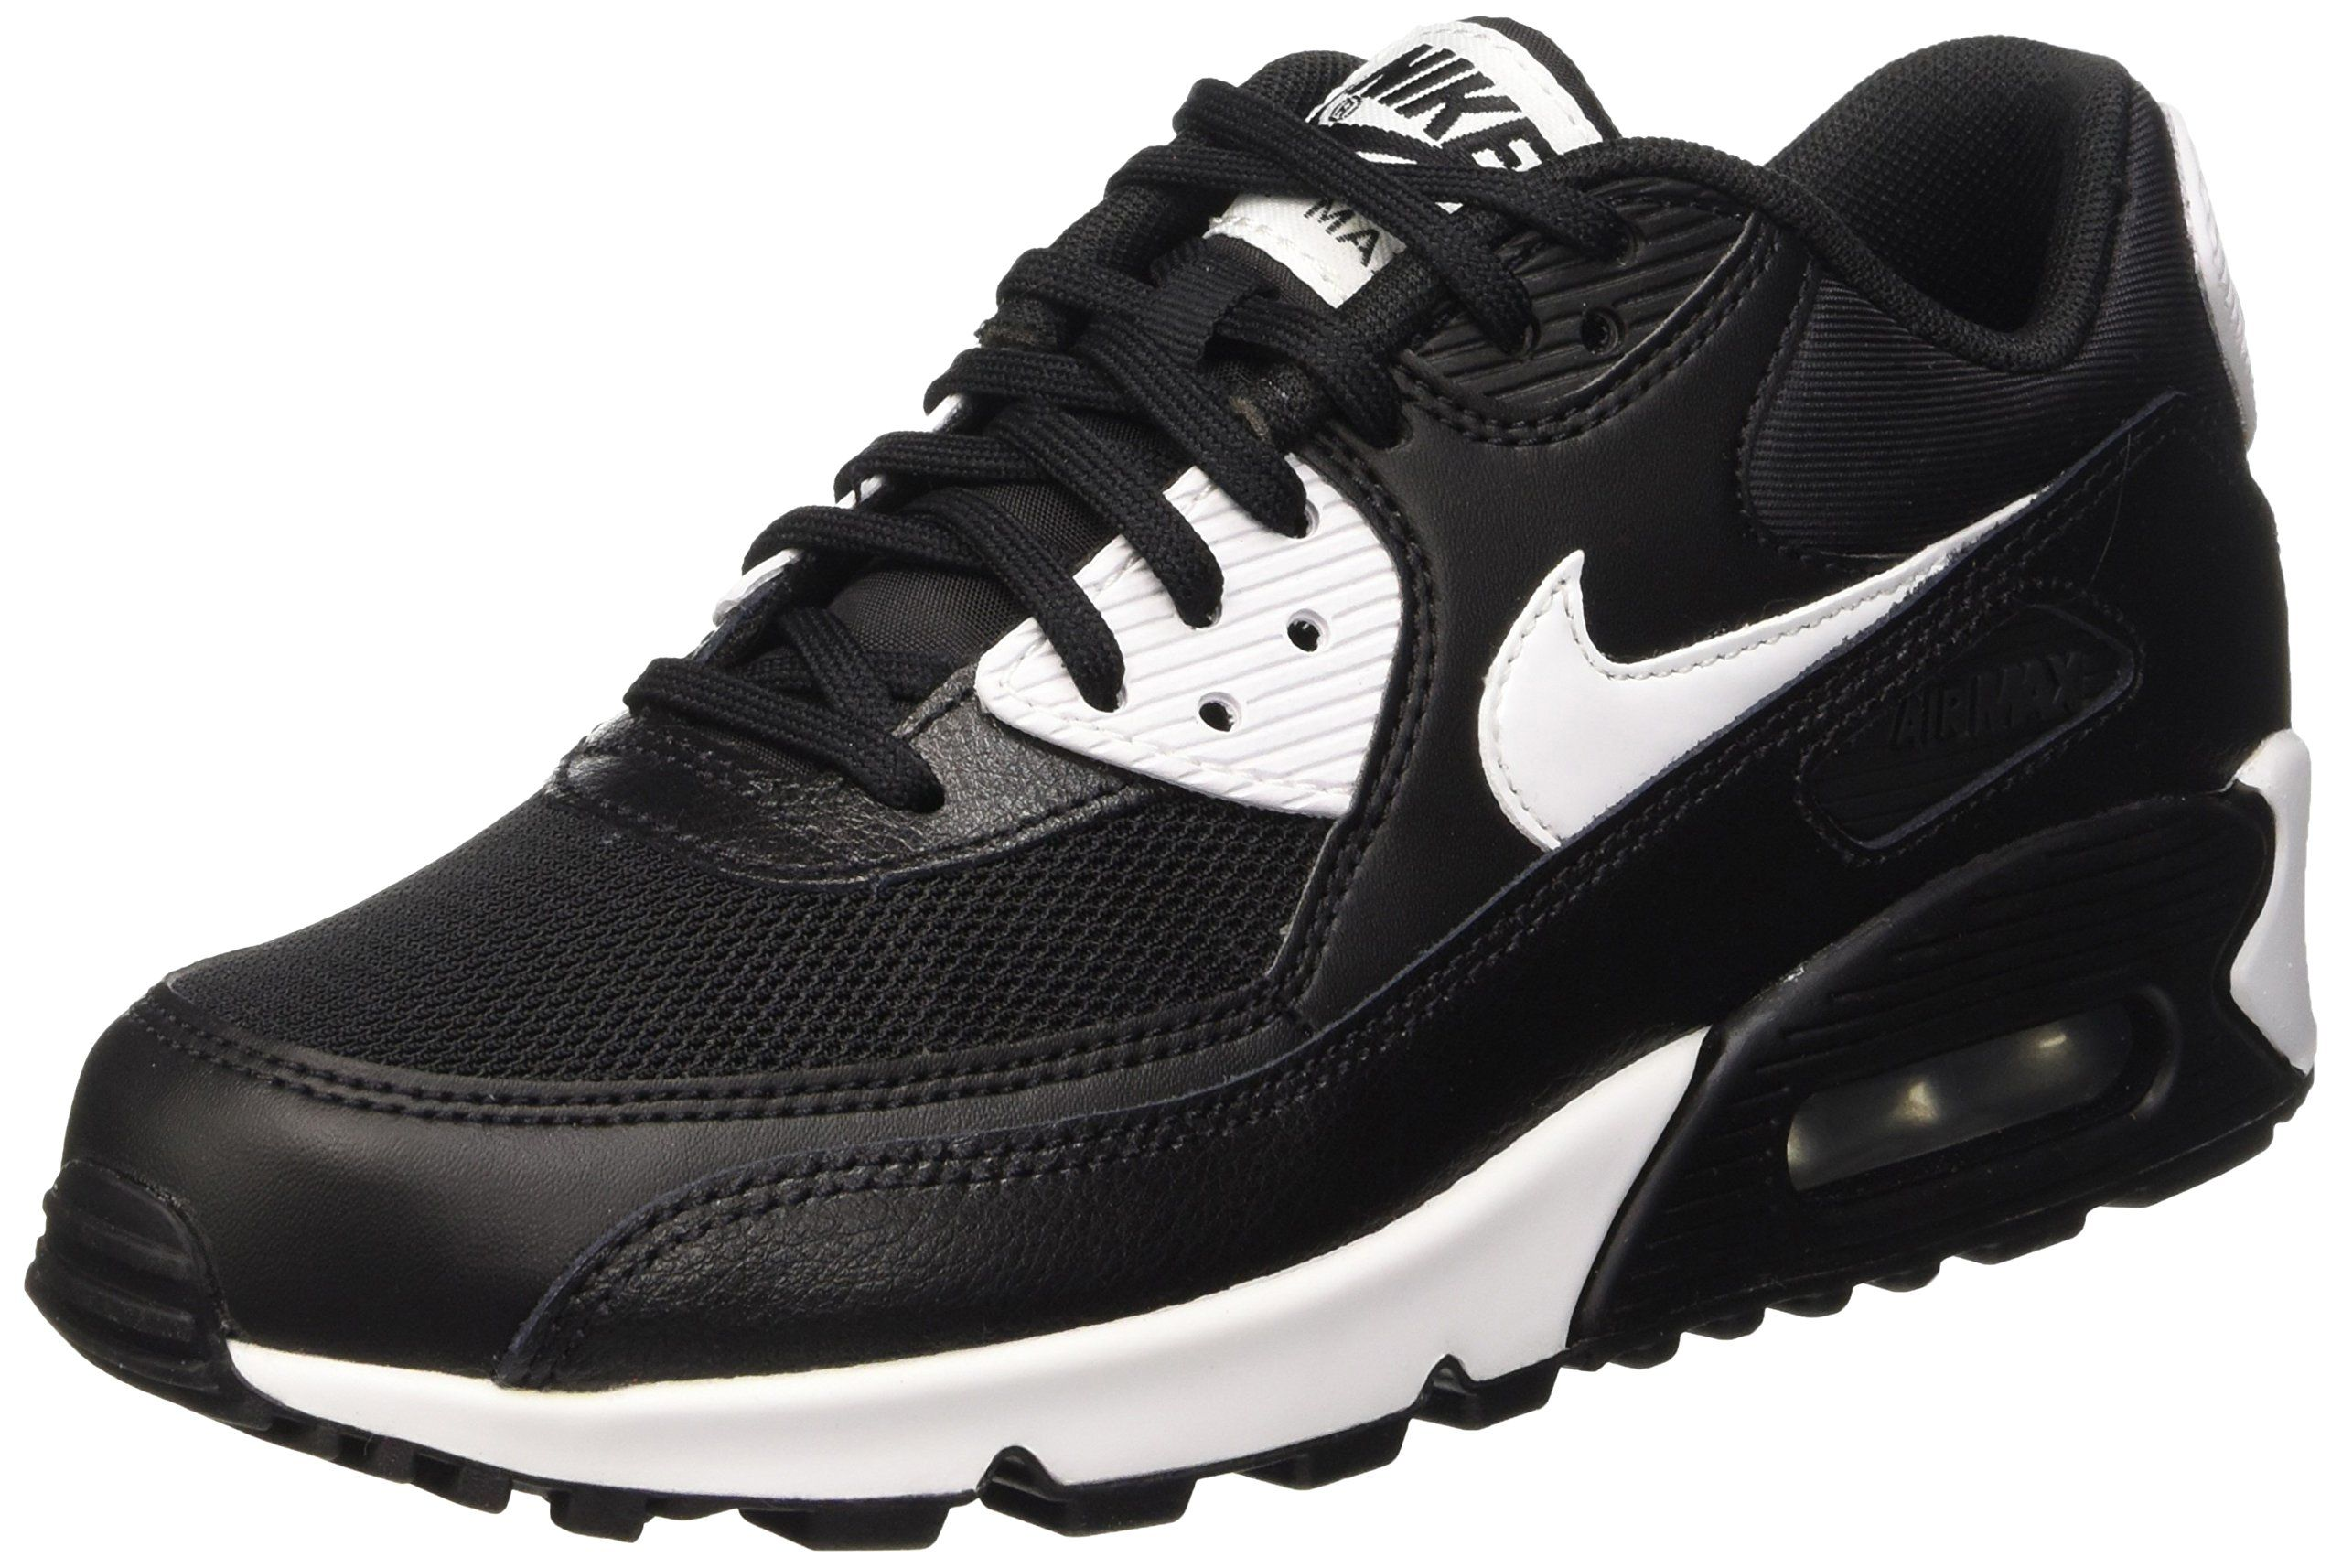 89ee151e5ca6 Nike Romaleos 2 Weightlifting Shoes - Men s styles only - Women must order  1.5 sizes down -  189